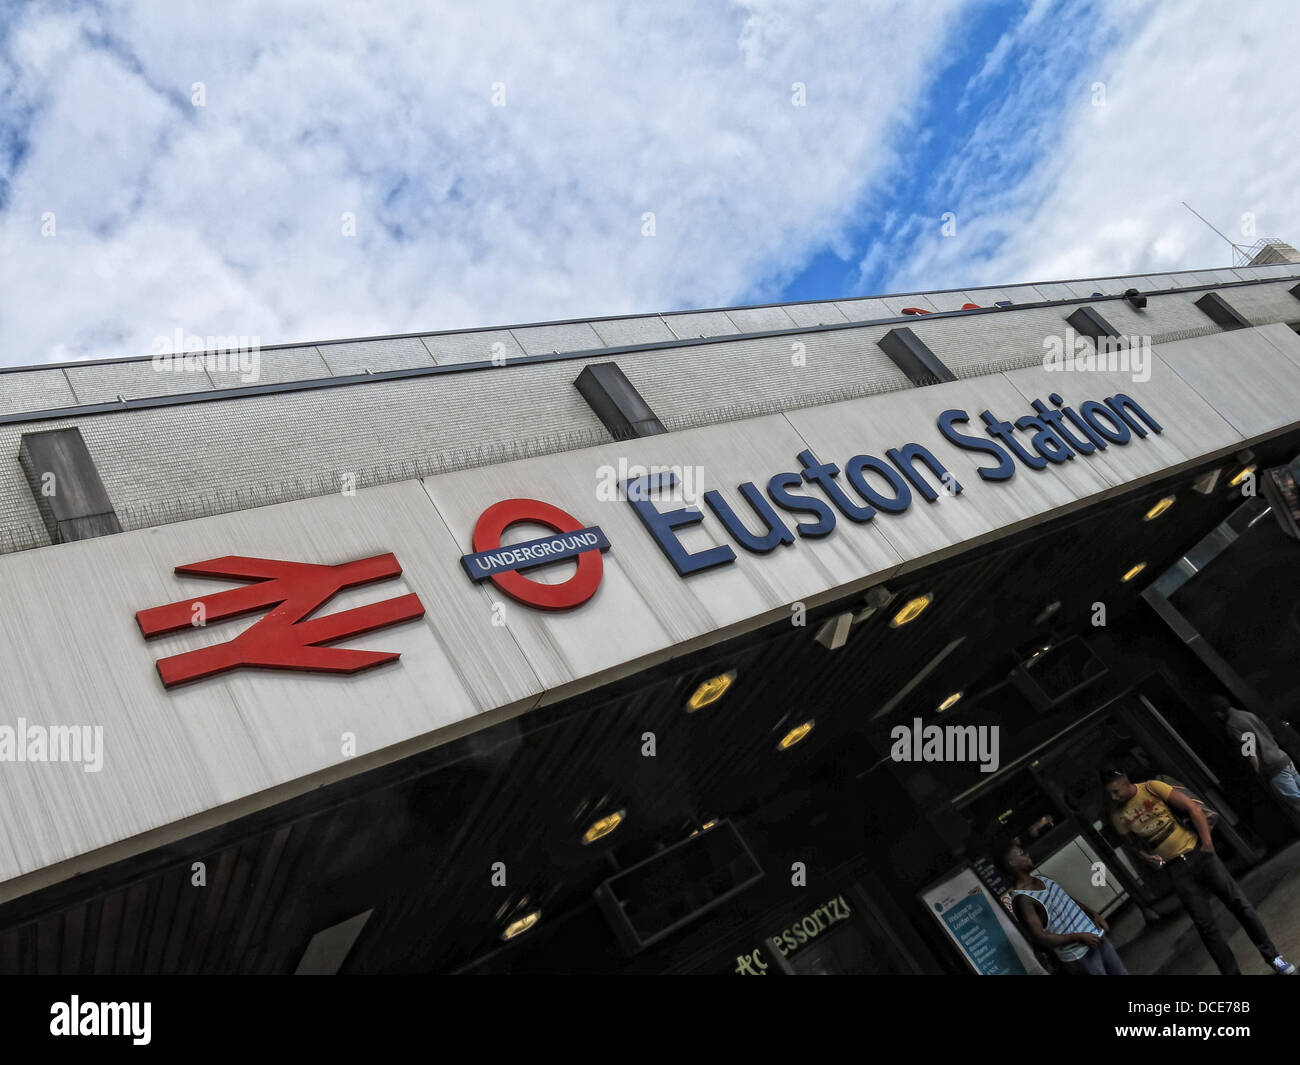 Main entrance concourse at Euston Station London - Stock Image